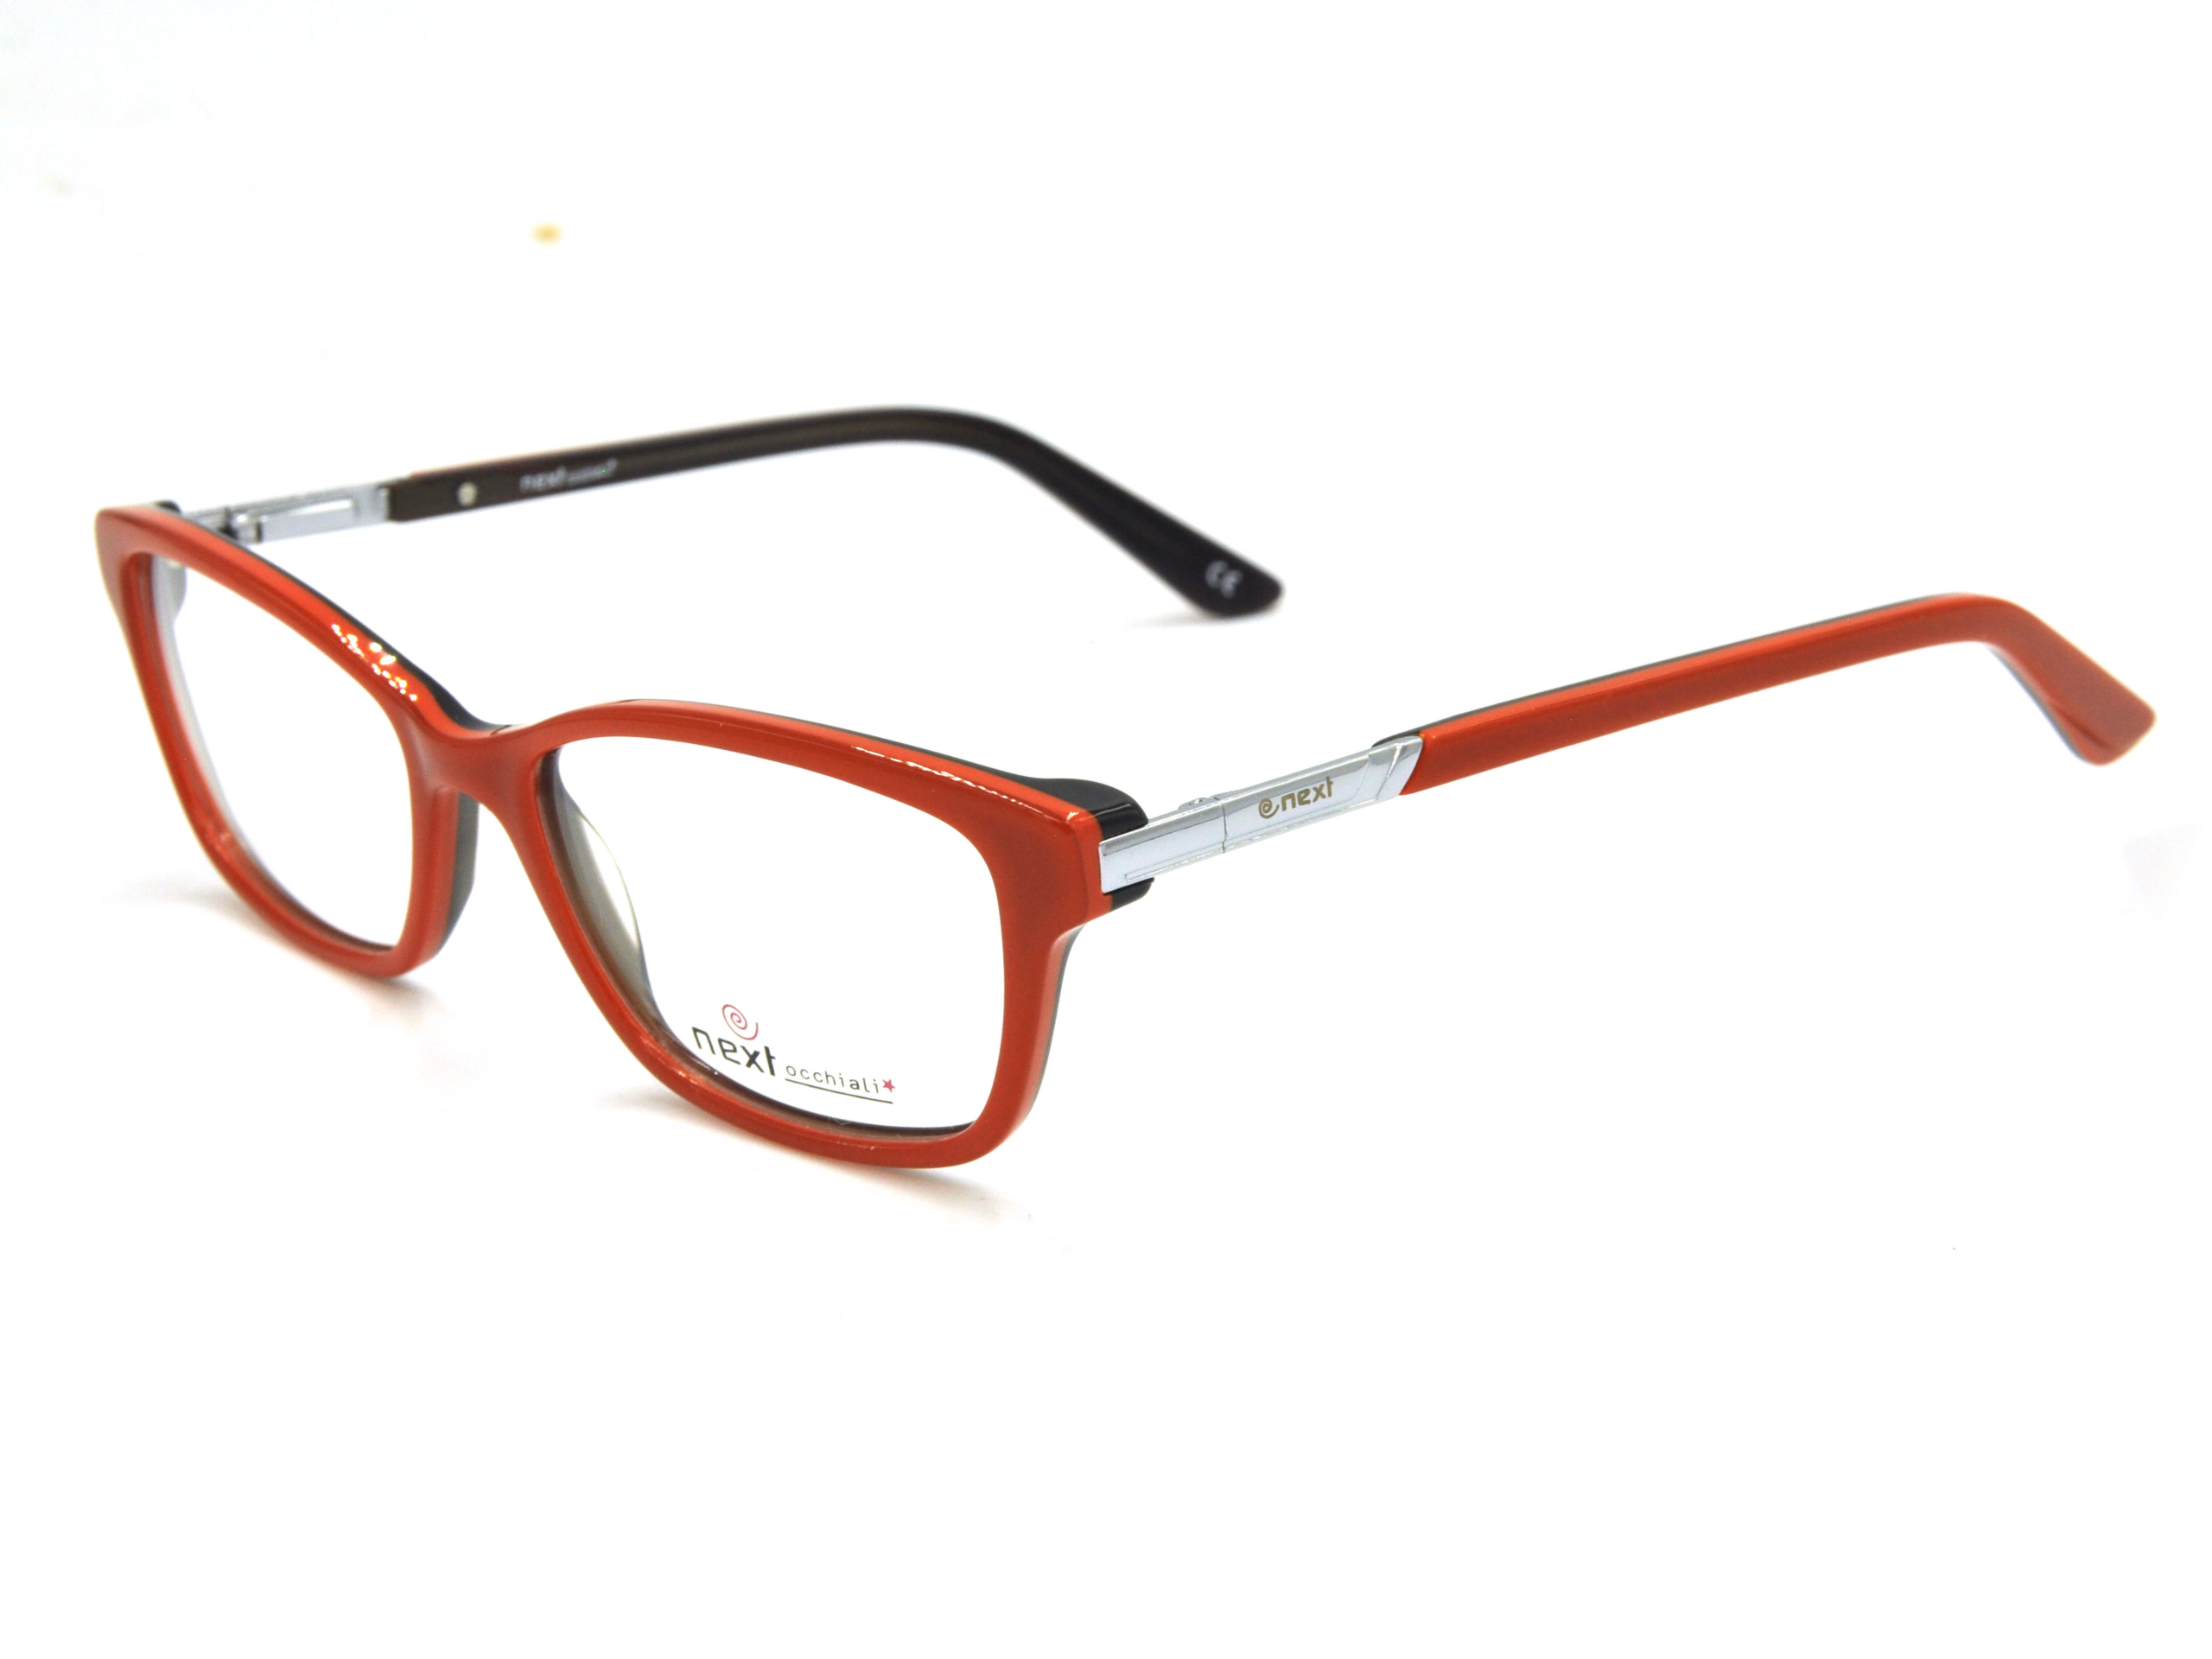 NEXT 4639 C4 Prescription Glasses 2020